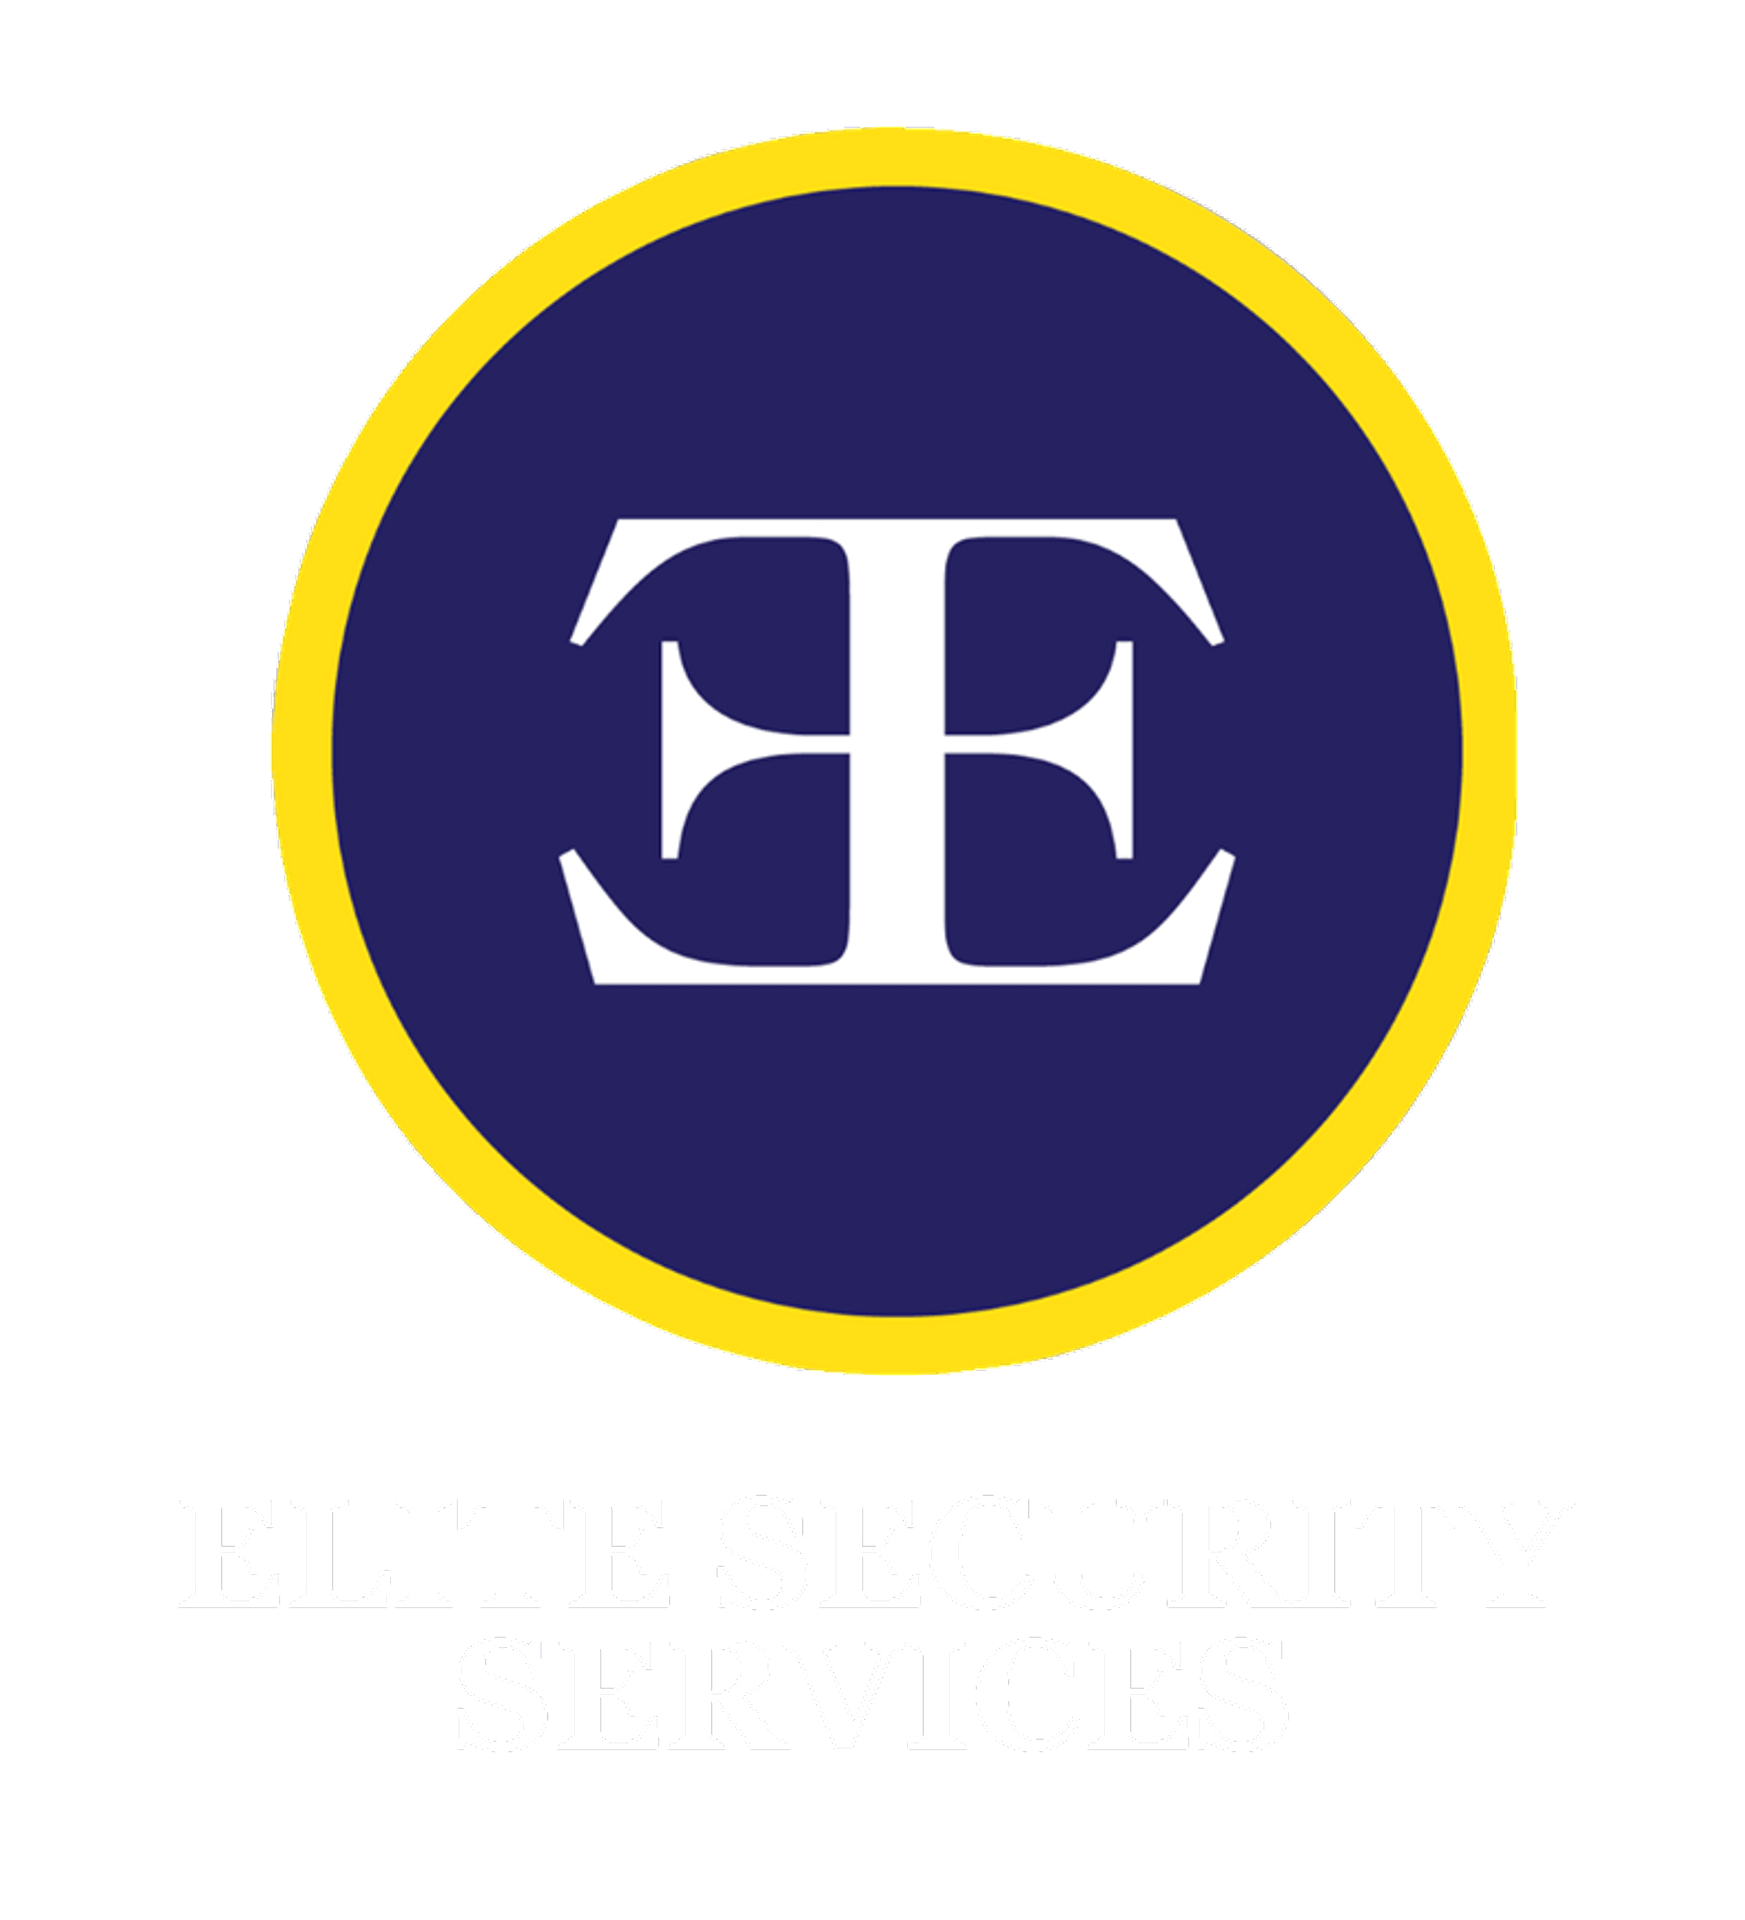 Celebrity Security Protection Services Vip